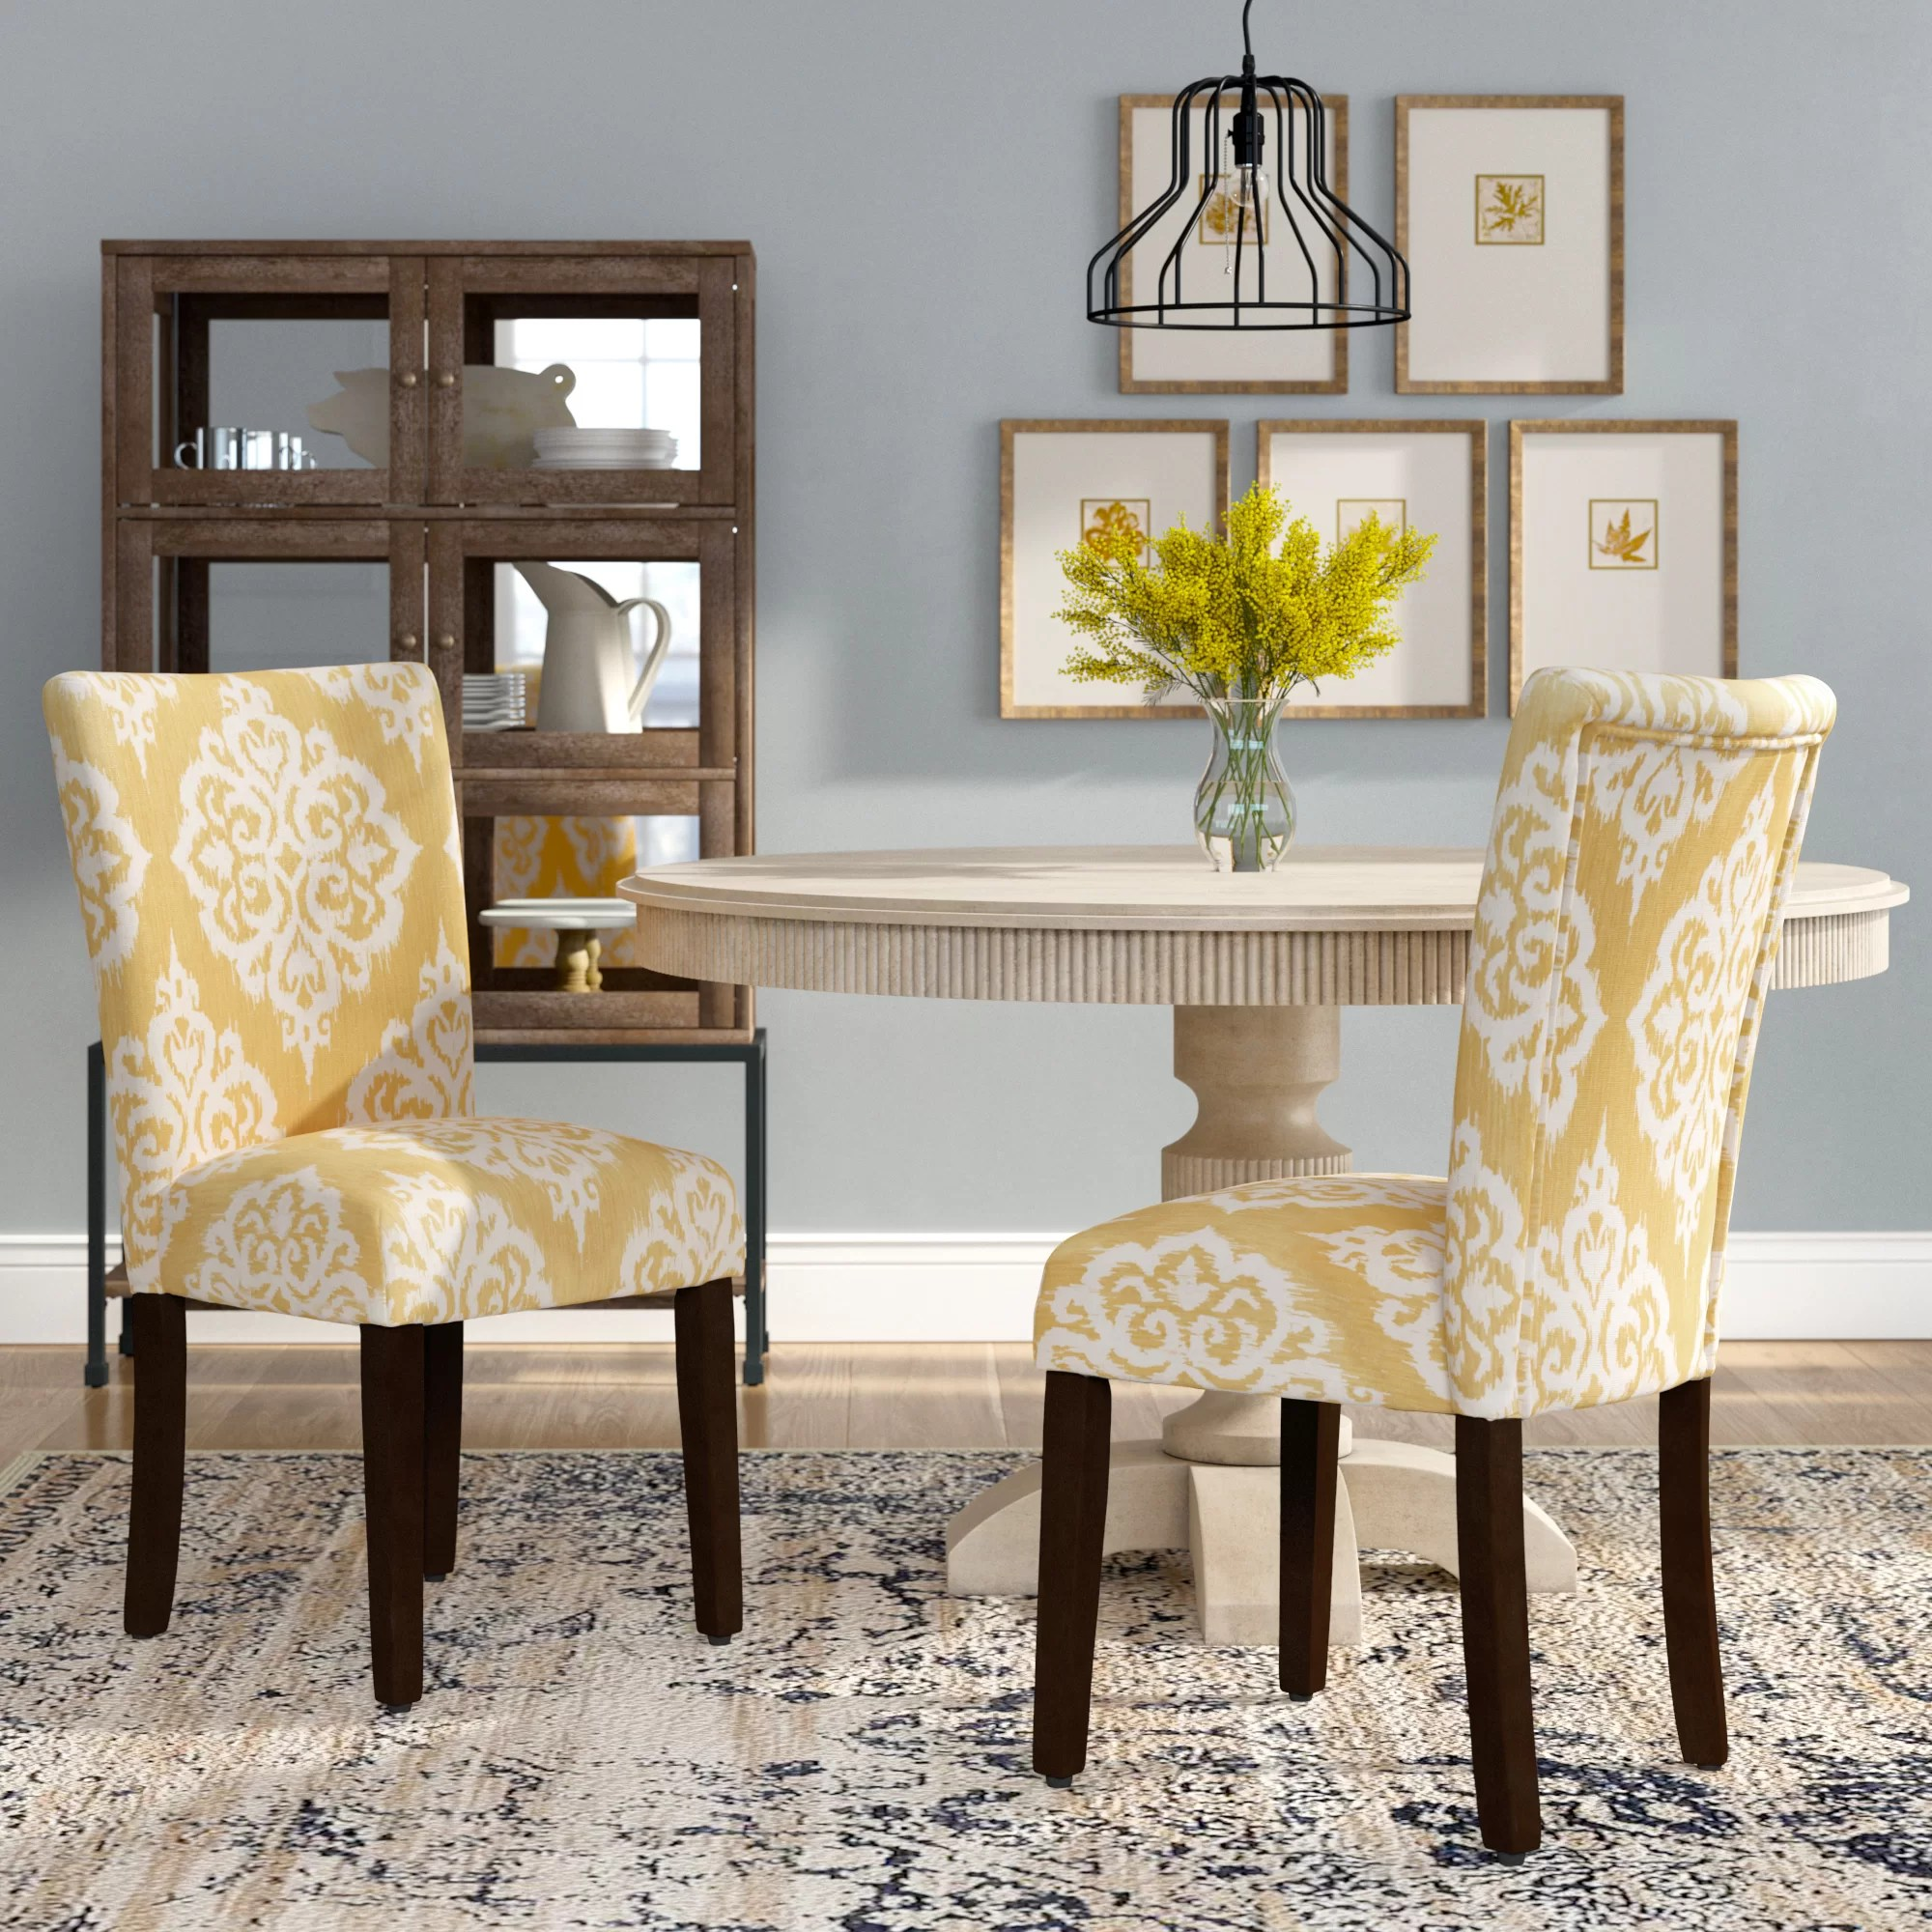 Damask Chair Natane Yellow Cream Damask Parsons Chair